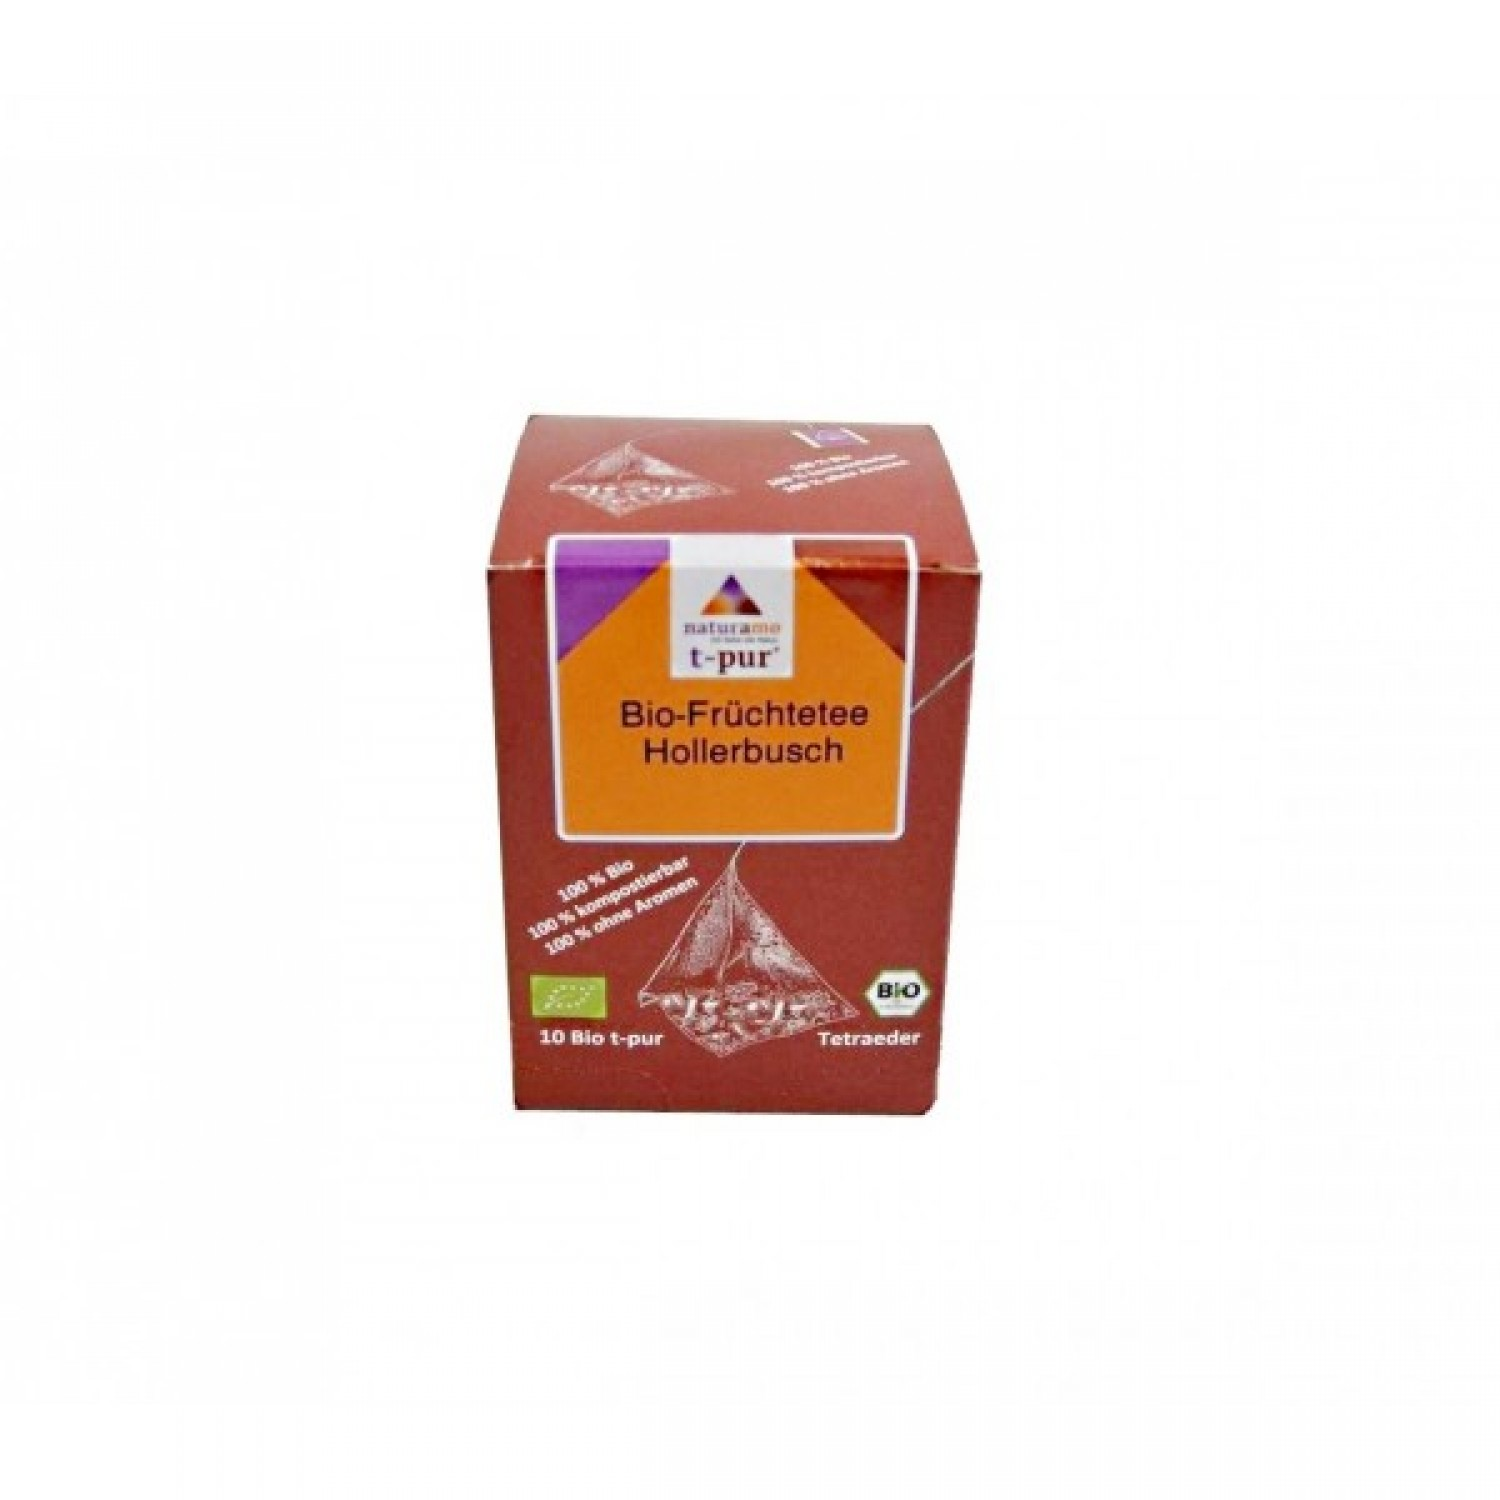 Organic Fruit Tea Elder Bush with Karkade naturamo